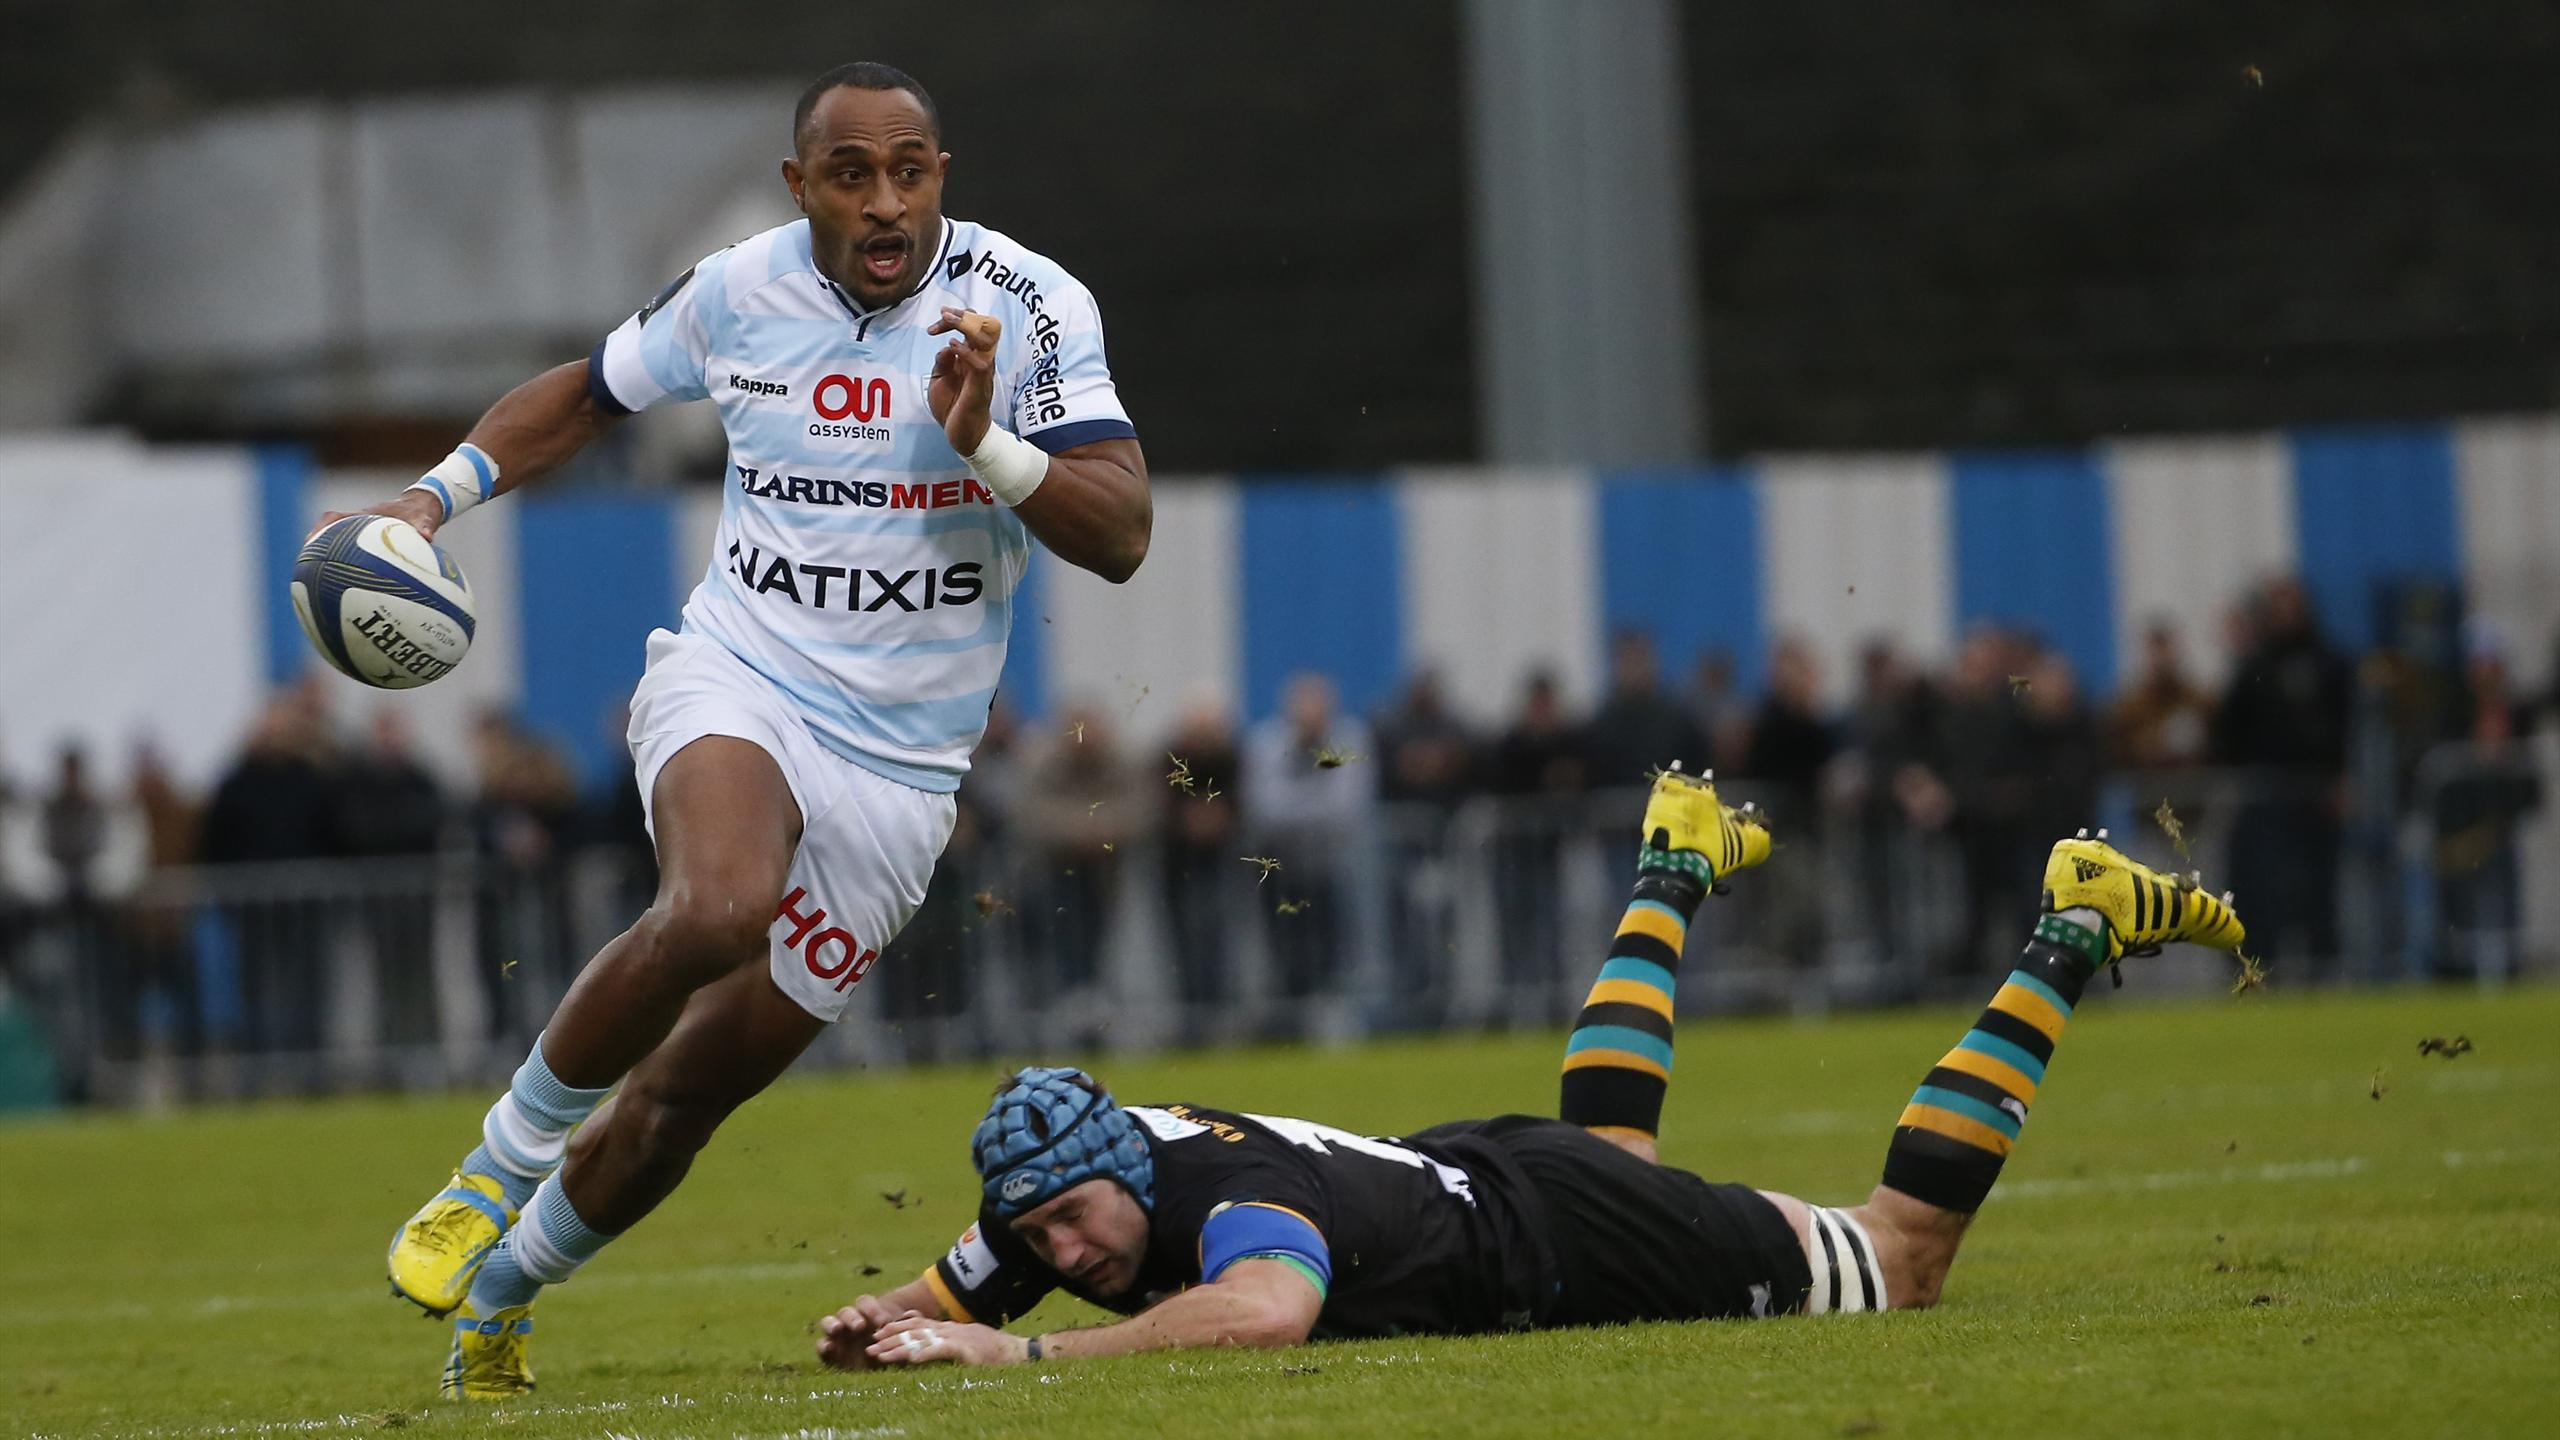 Joe Rokocoko (Racing 92) face à Northampton - 12 décembre 2015